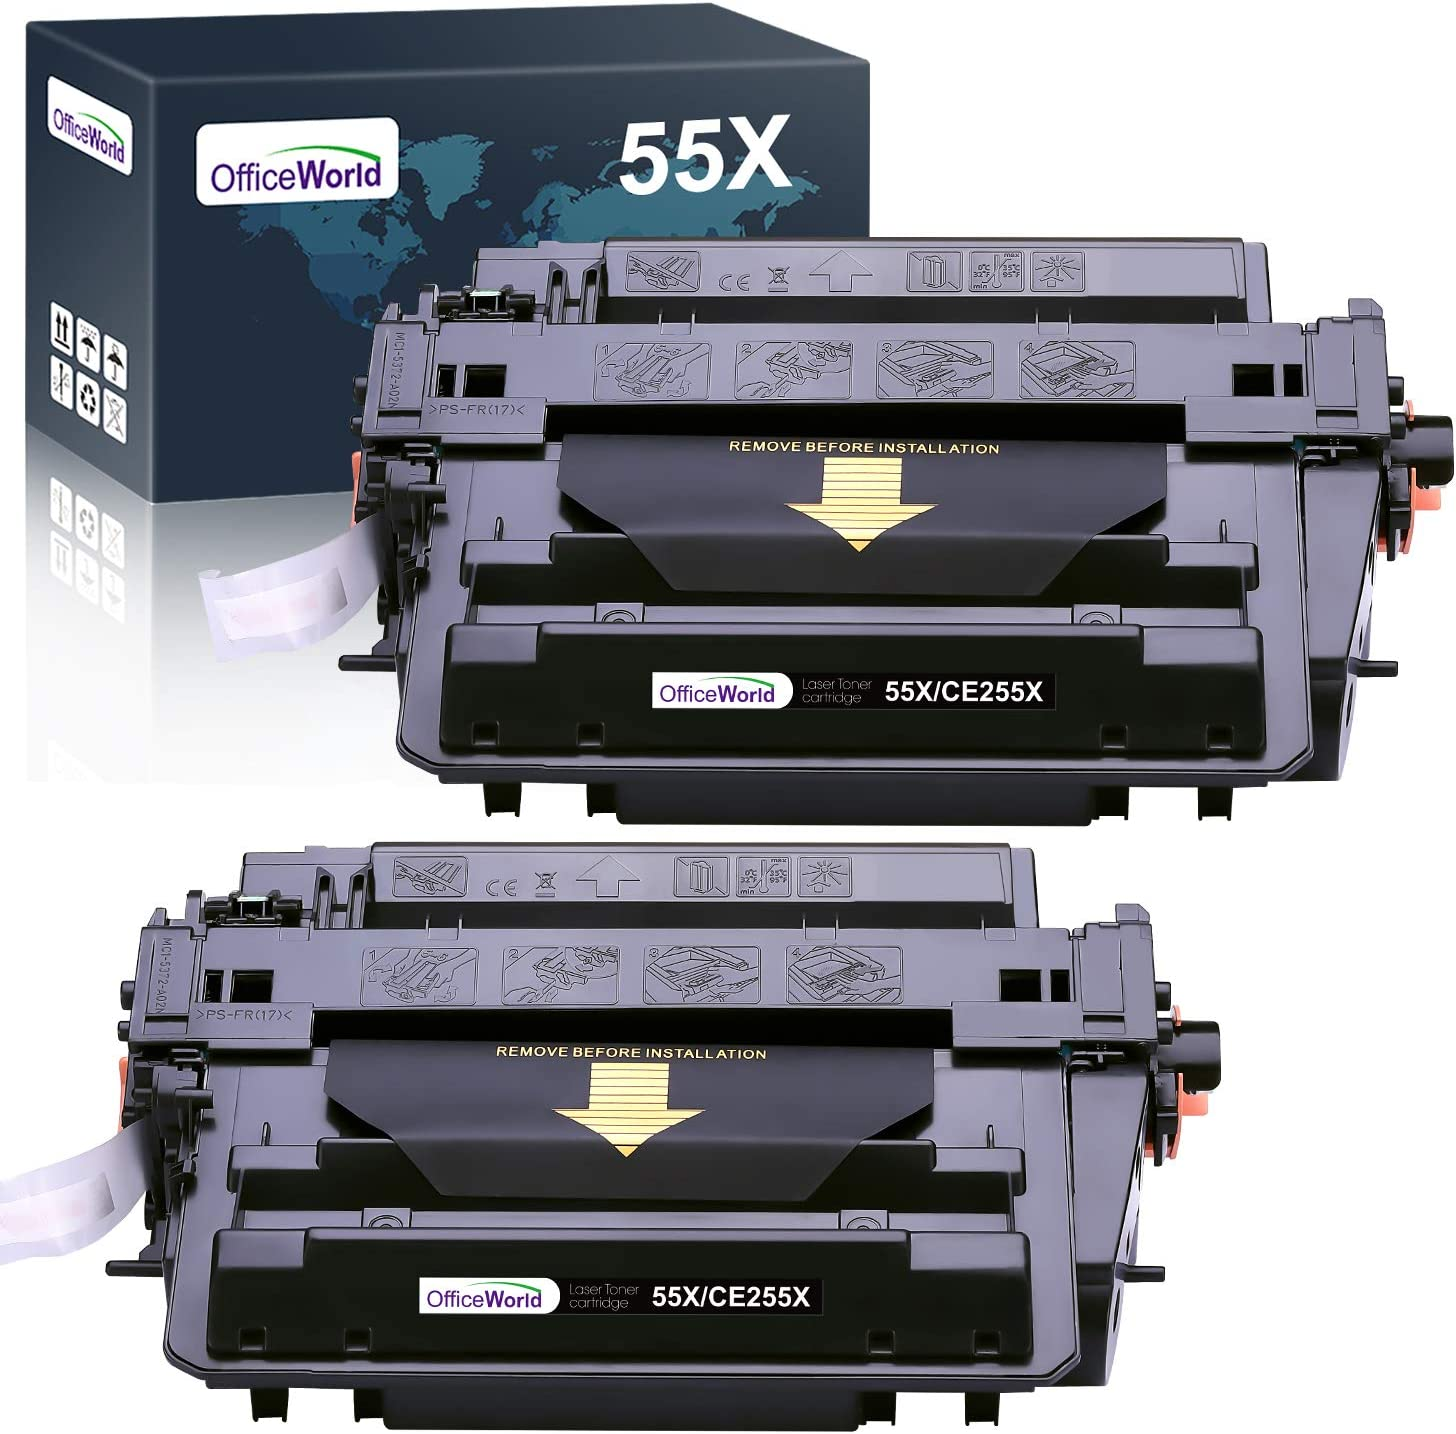 OfficeWorld Compatible HP 55A 55X Toner Cartridges Replacement for HP CE255X CE255A High Yield, for HP Laserjet P3010 P3011 P3015 P3015dn P3015n P3015x MFP M521dn M521dw M525c M525dn Black 2 Pack